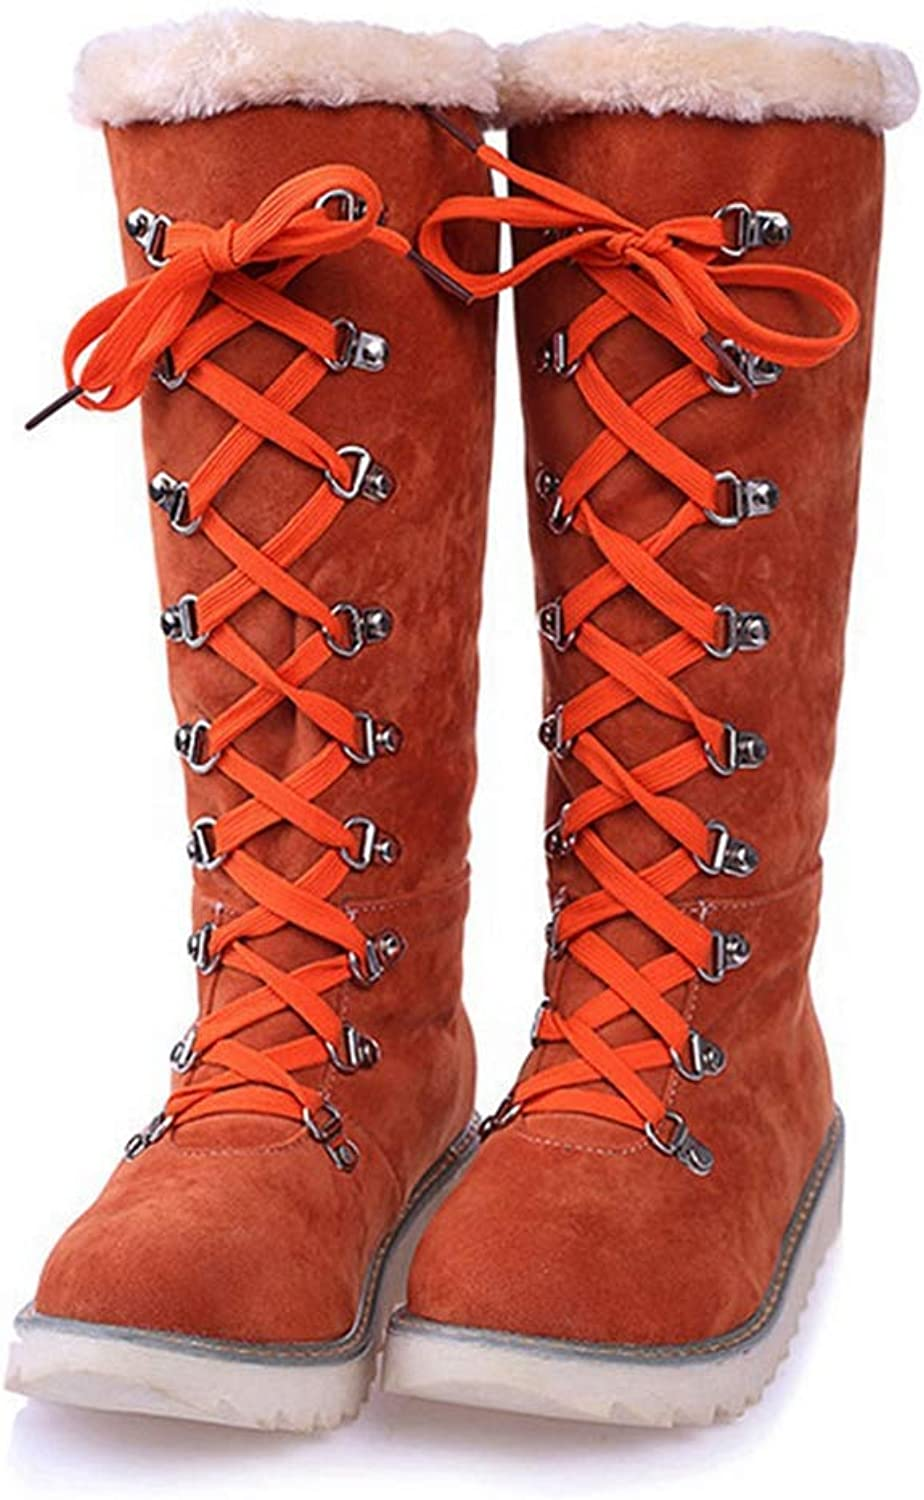 CYBLING Womens Winter Warm Snow Boots Waterproof Suede Low Heel Lace up Mid Calf Boots